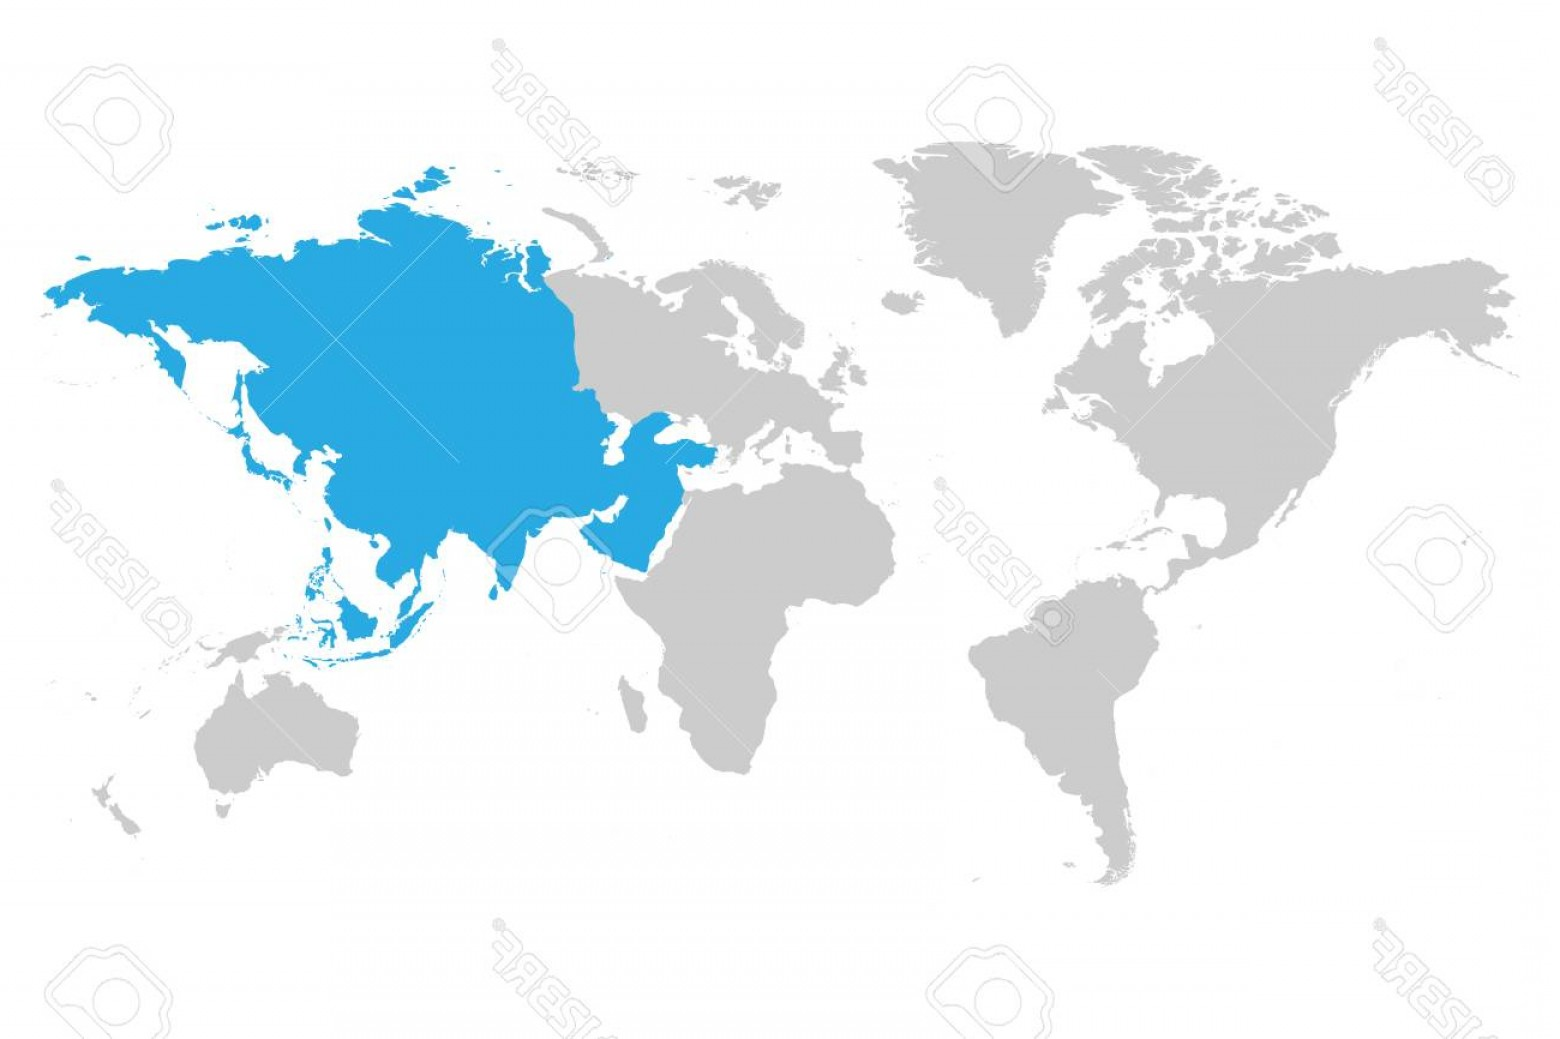 Asia Continent Map Vector: Photostock Vector Asia Continent Blue Marked In Gray Silhouette Of World Map Simple Flat Vector Illustration